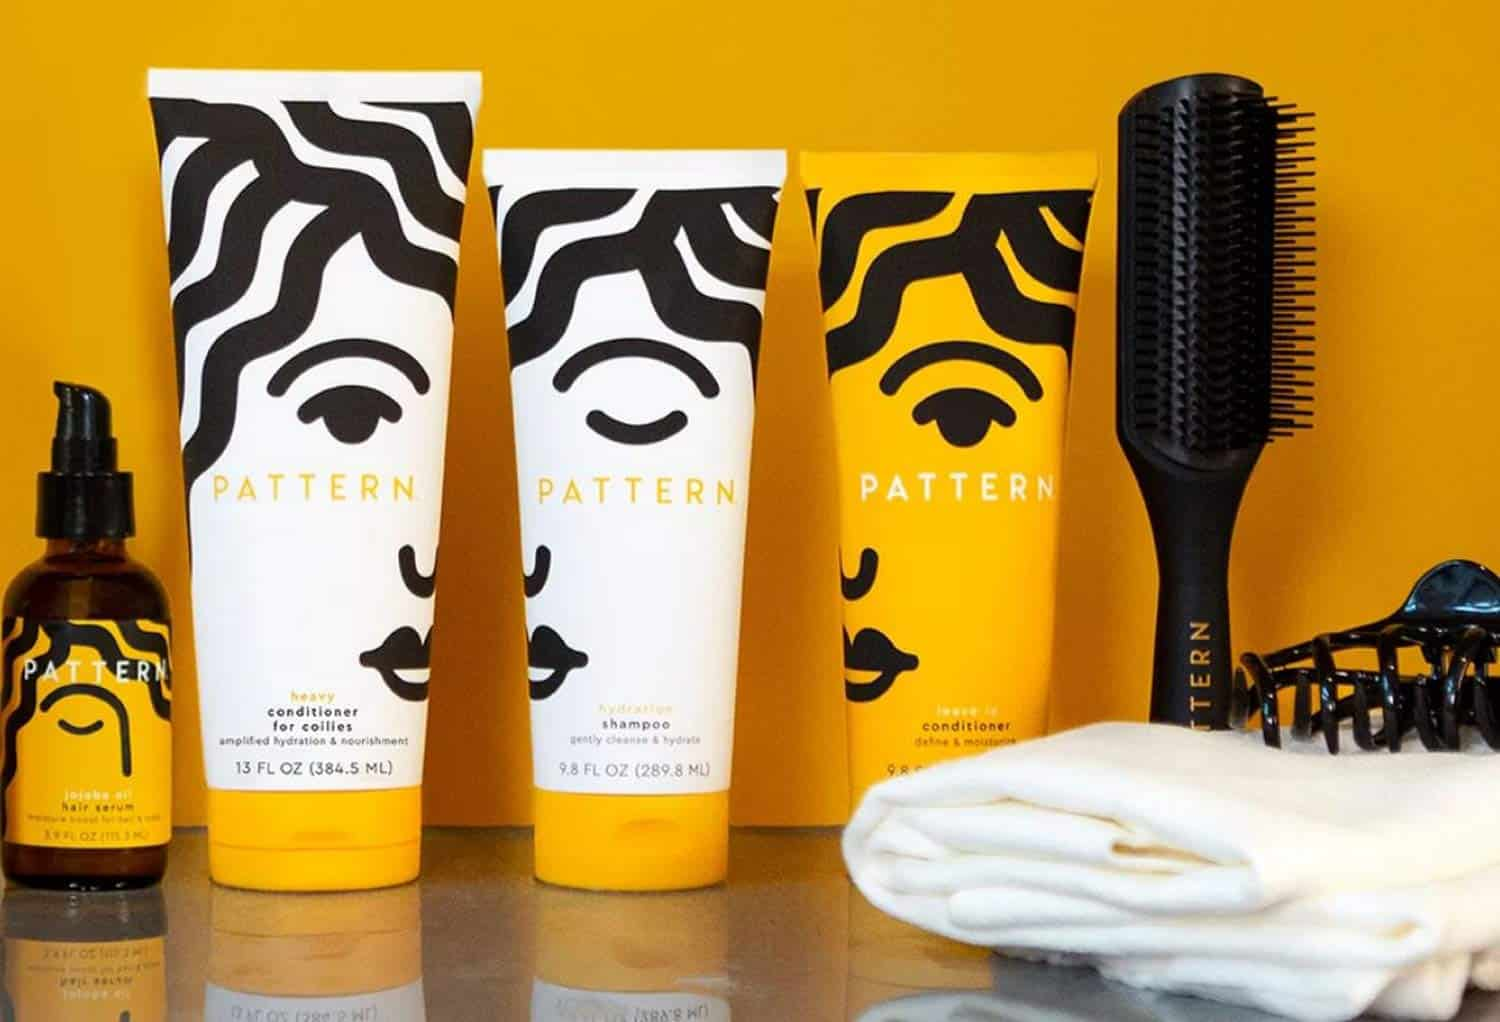 best hair care brands Pattern on display